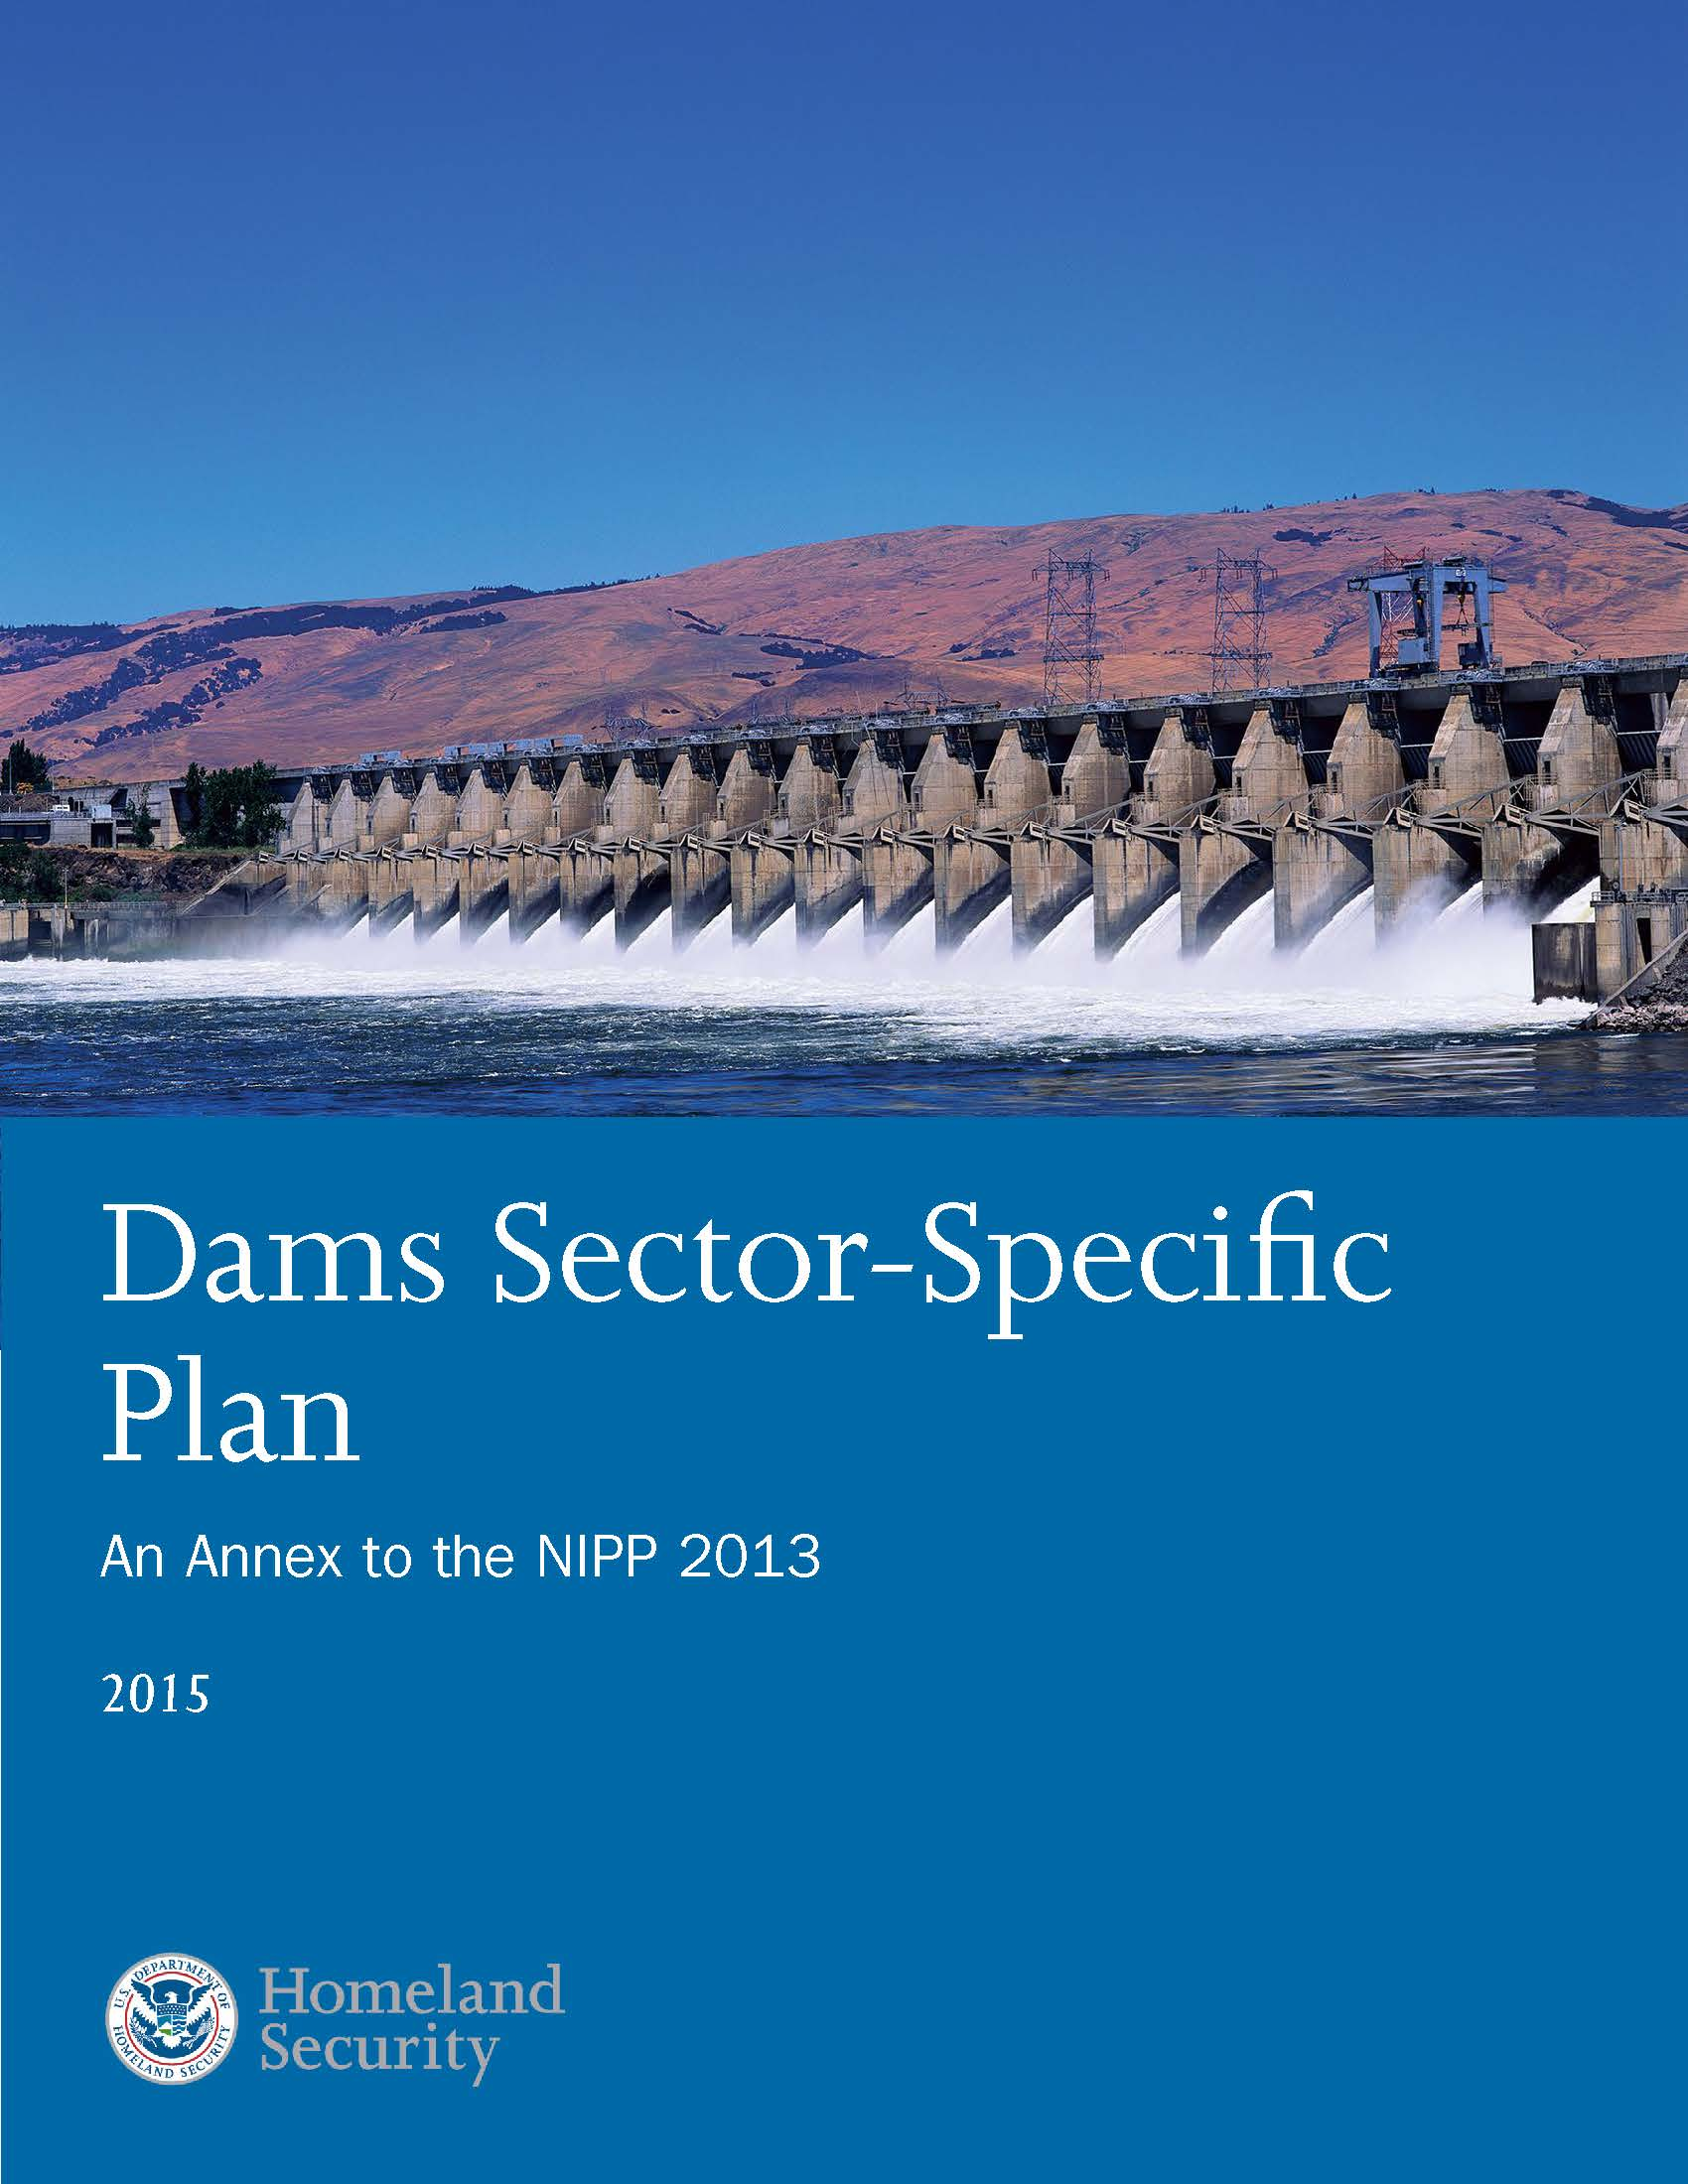 8. Dams Sector-Specific Plan_Page_01.jpg